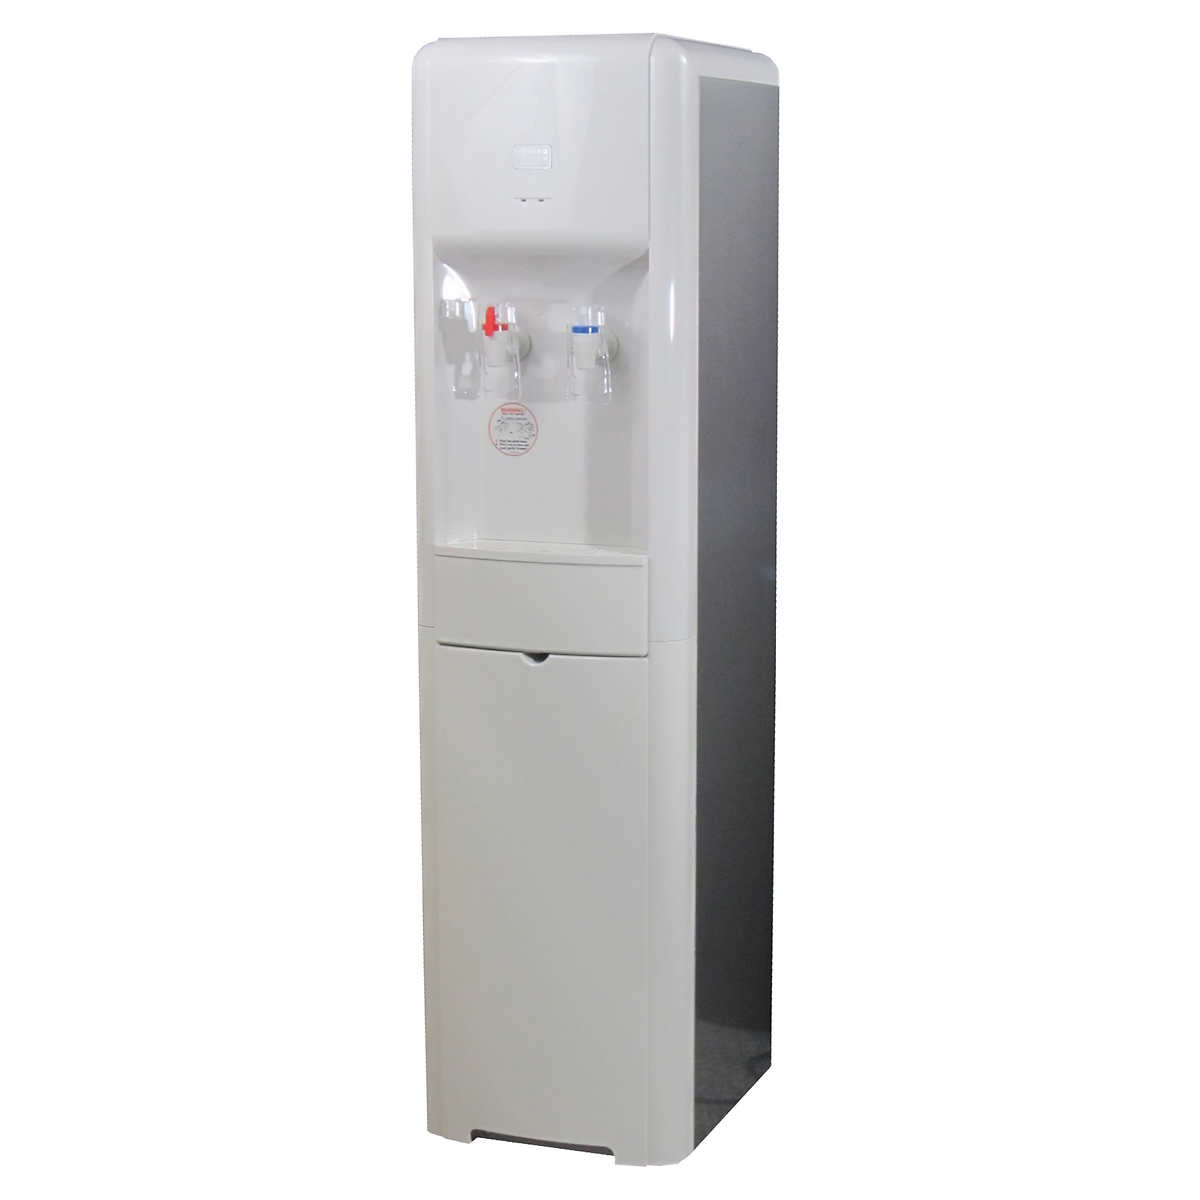 Refrigerated Water Dispenser Water Coolers Dispensers Costco